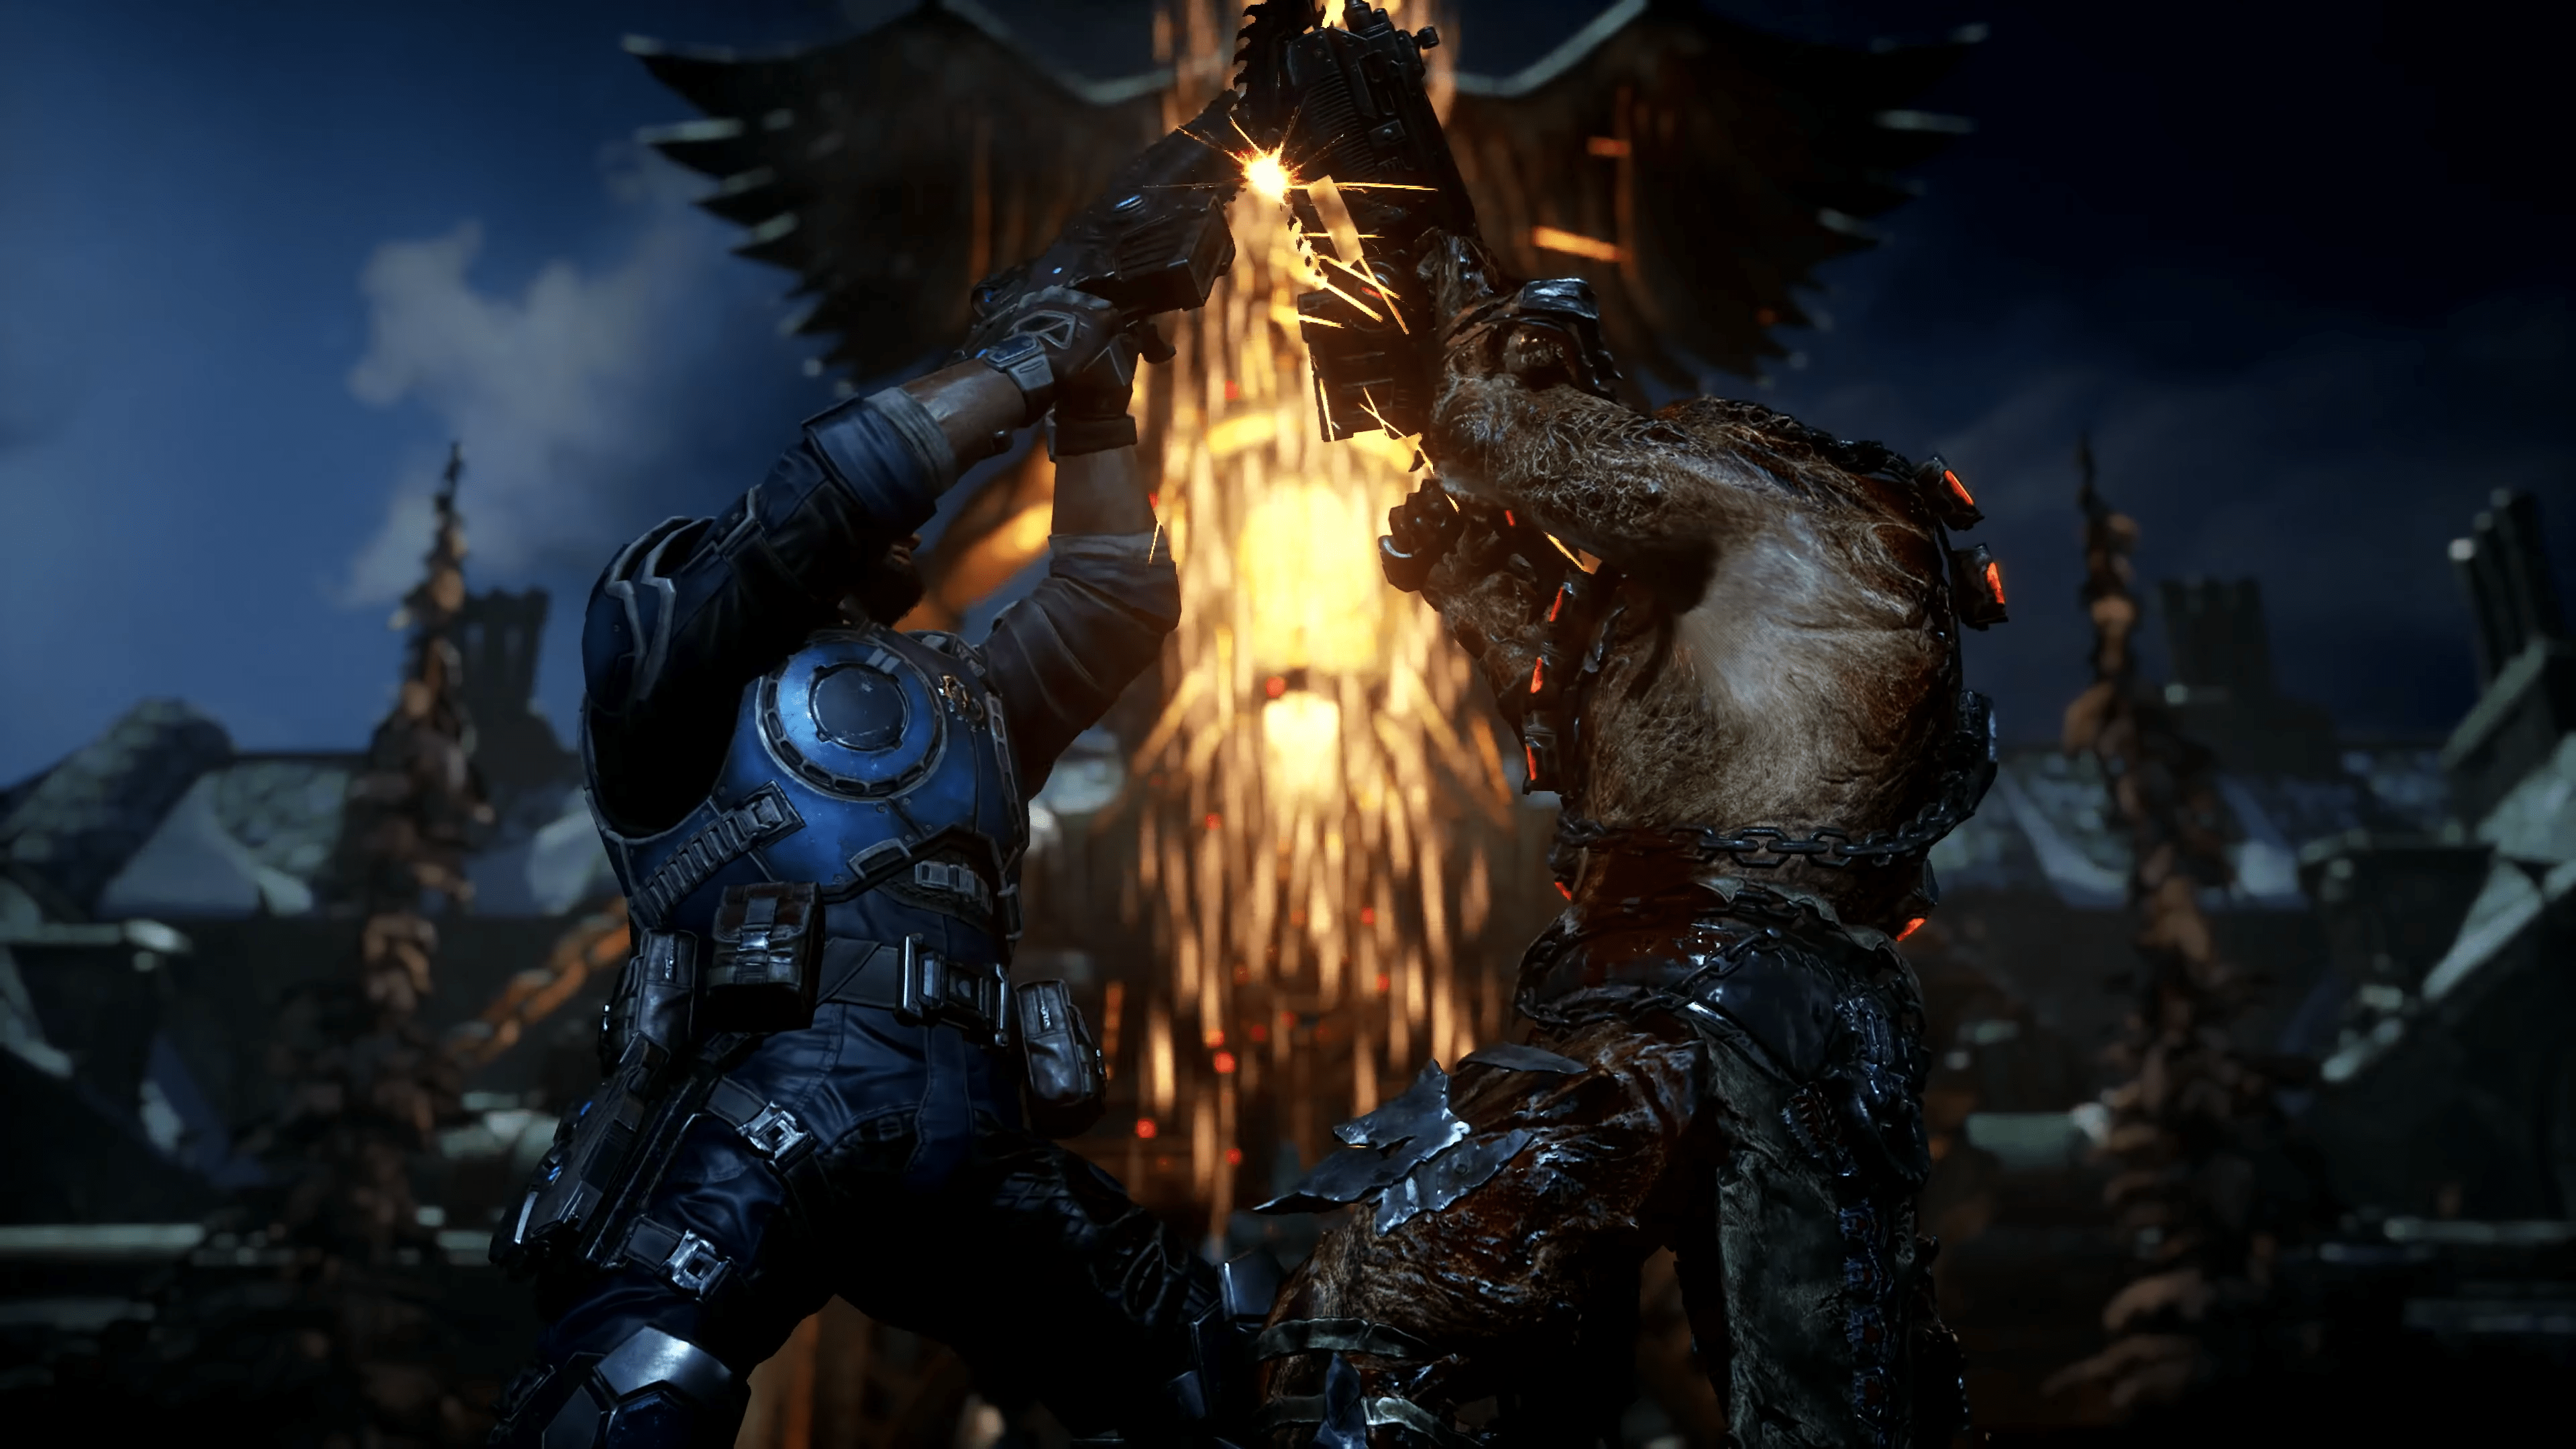 Gears 5, The Fifth Game In The Gears Of War Series, Sports A Very Confusing System For Microtransactions